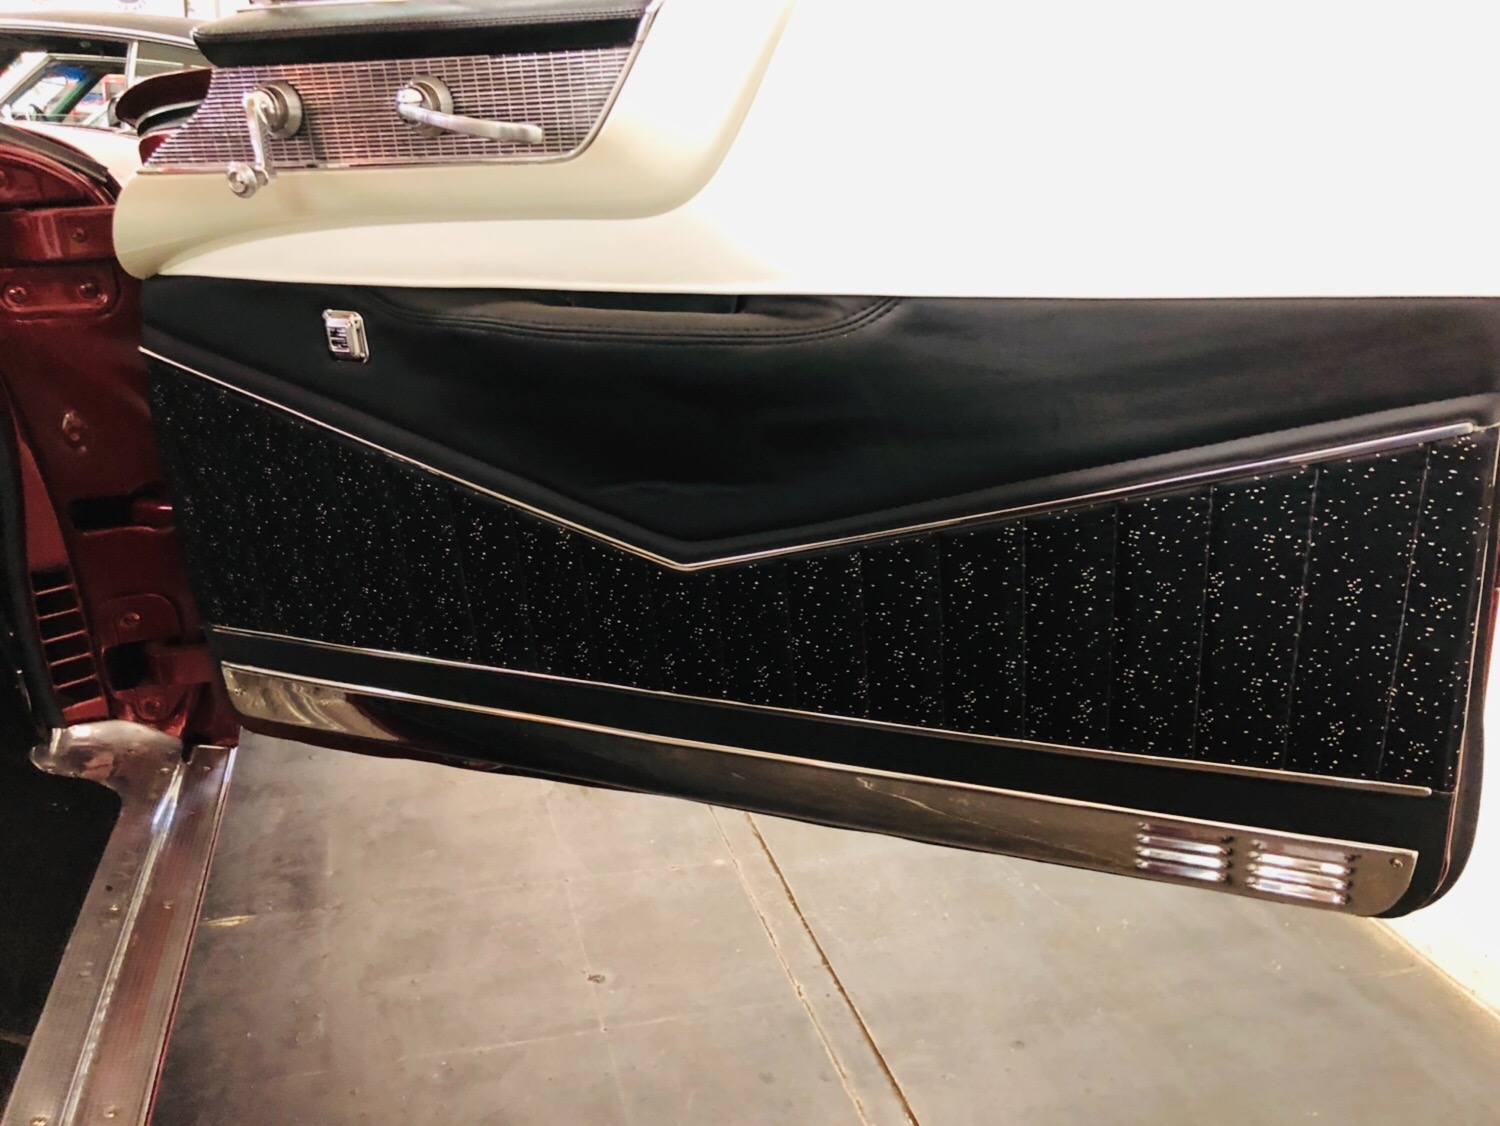 Used 1956 Cadillac Coupe DeVille -RESTORED 2 DOOR HARDTOP FROM ARIZONA- | Mundelein, IL